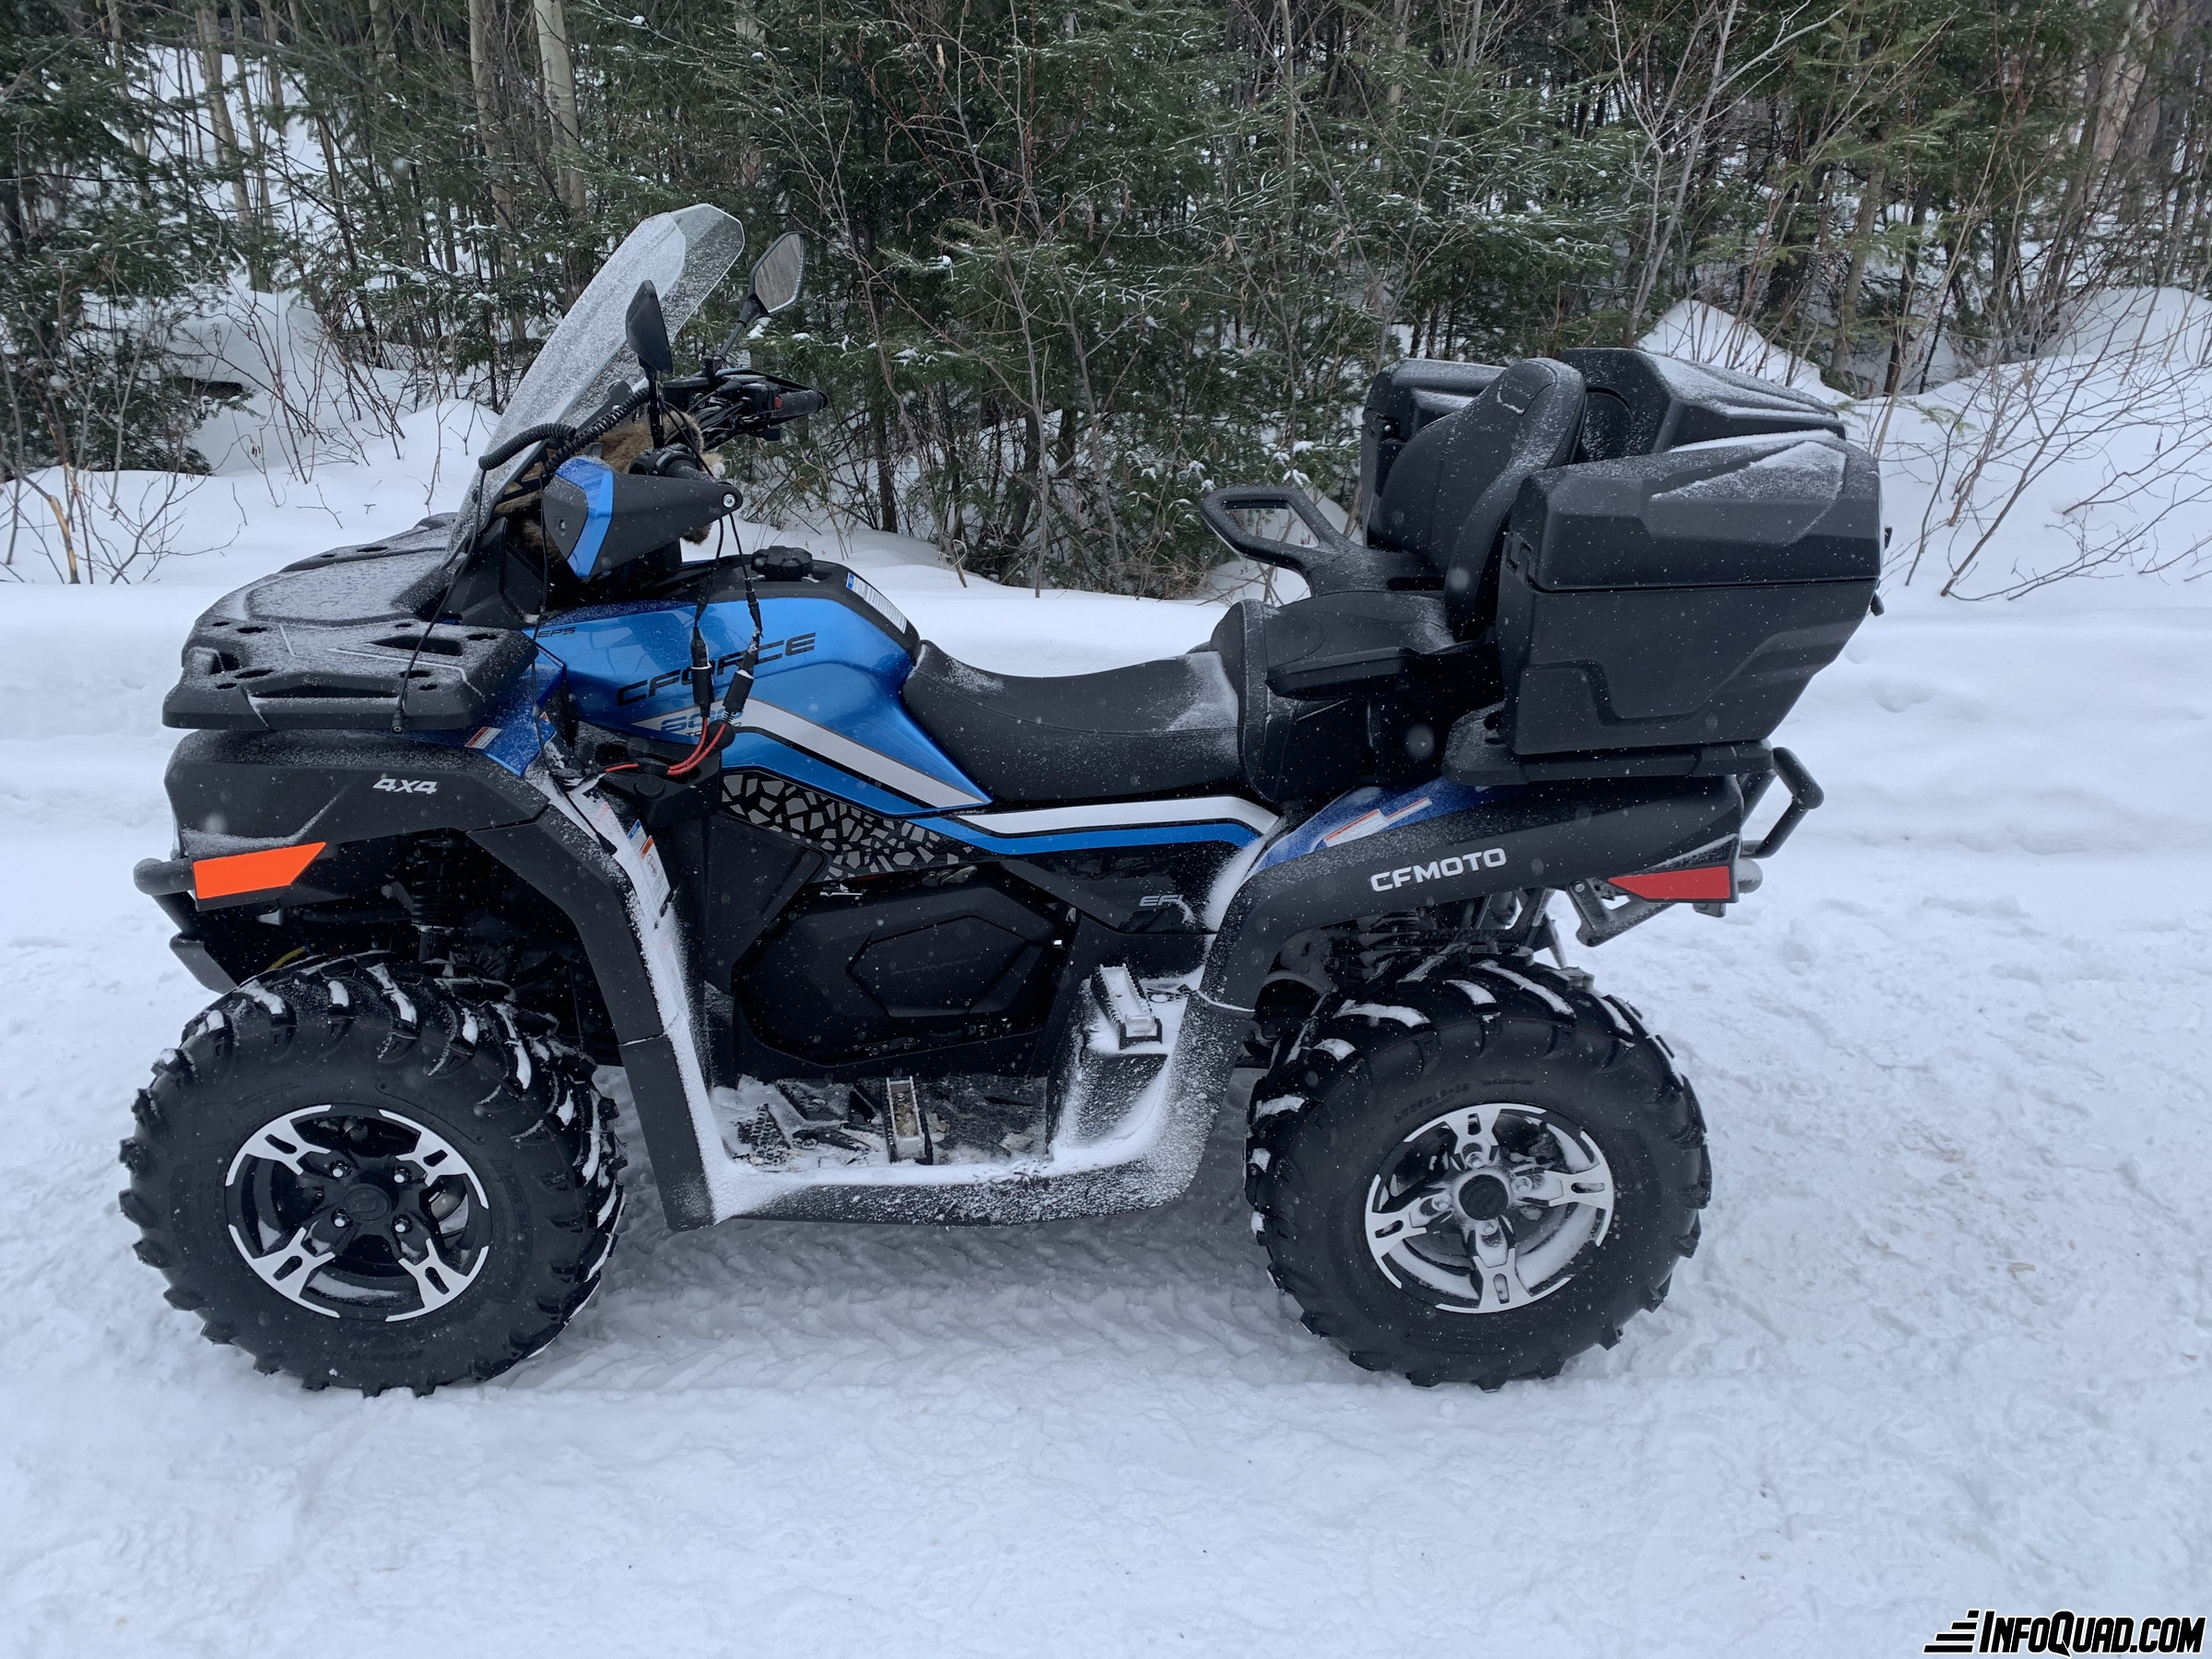 The 2021 Kawasaki Brute Force 750 - a great value